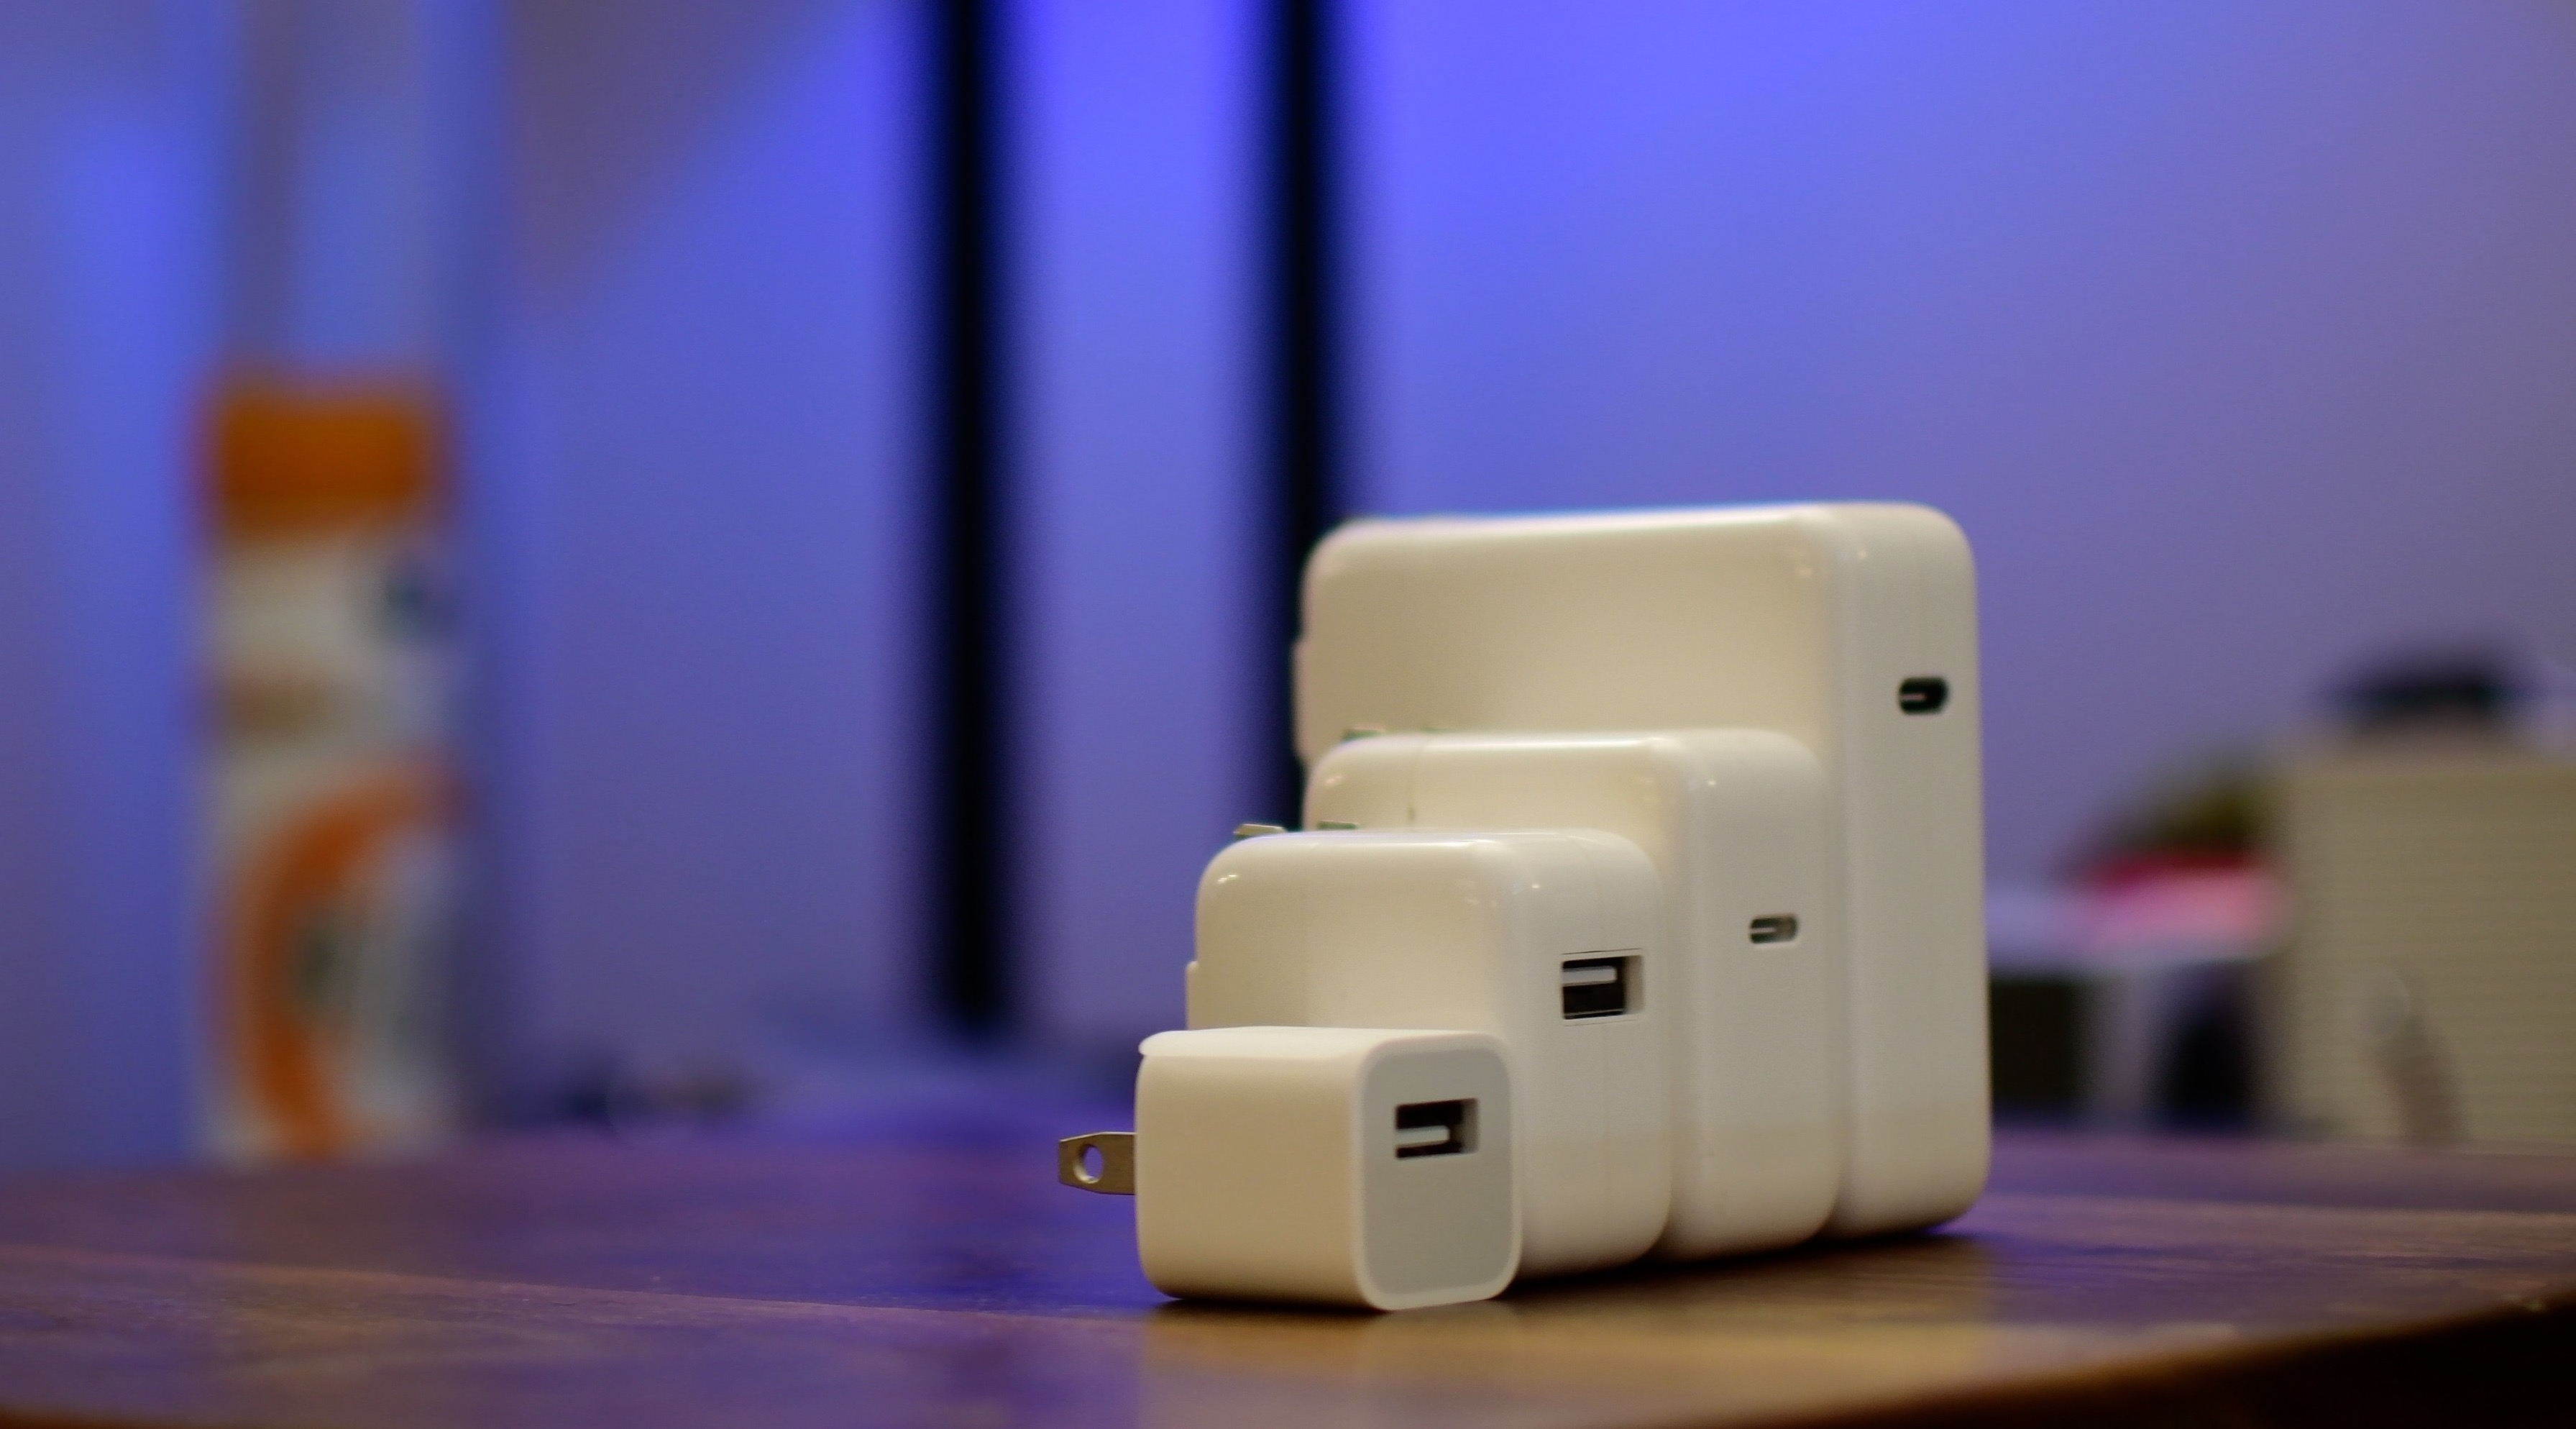 Apple USB-C chargers